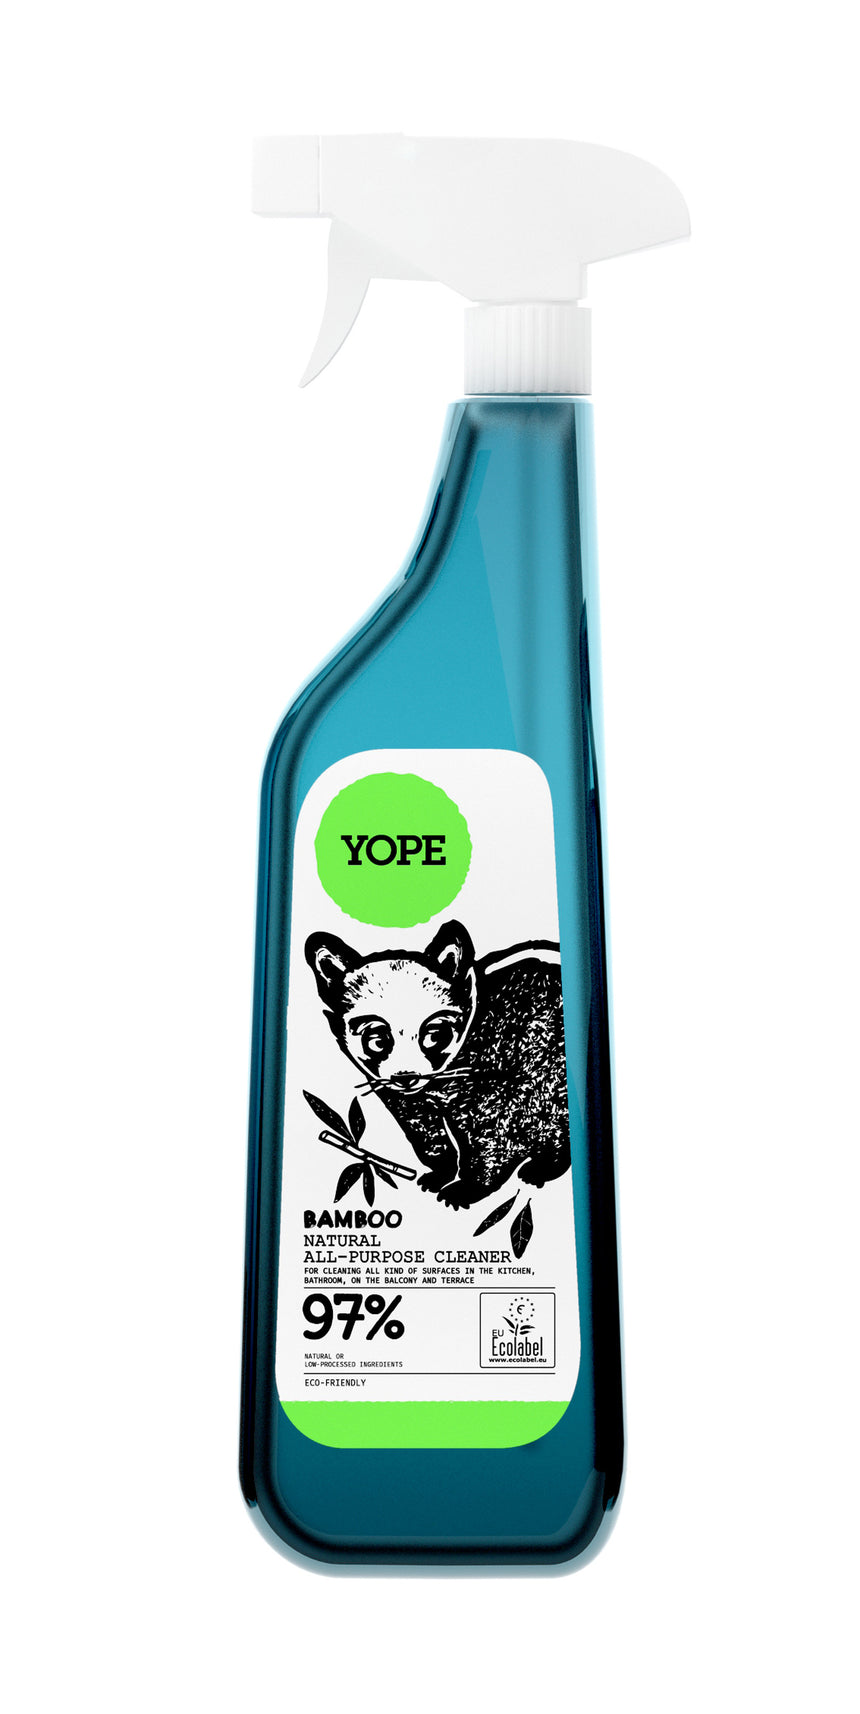 YOPE Natural all-purpose cleaner spray